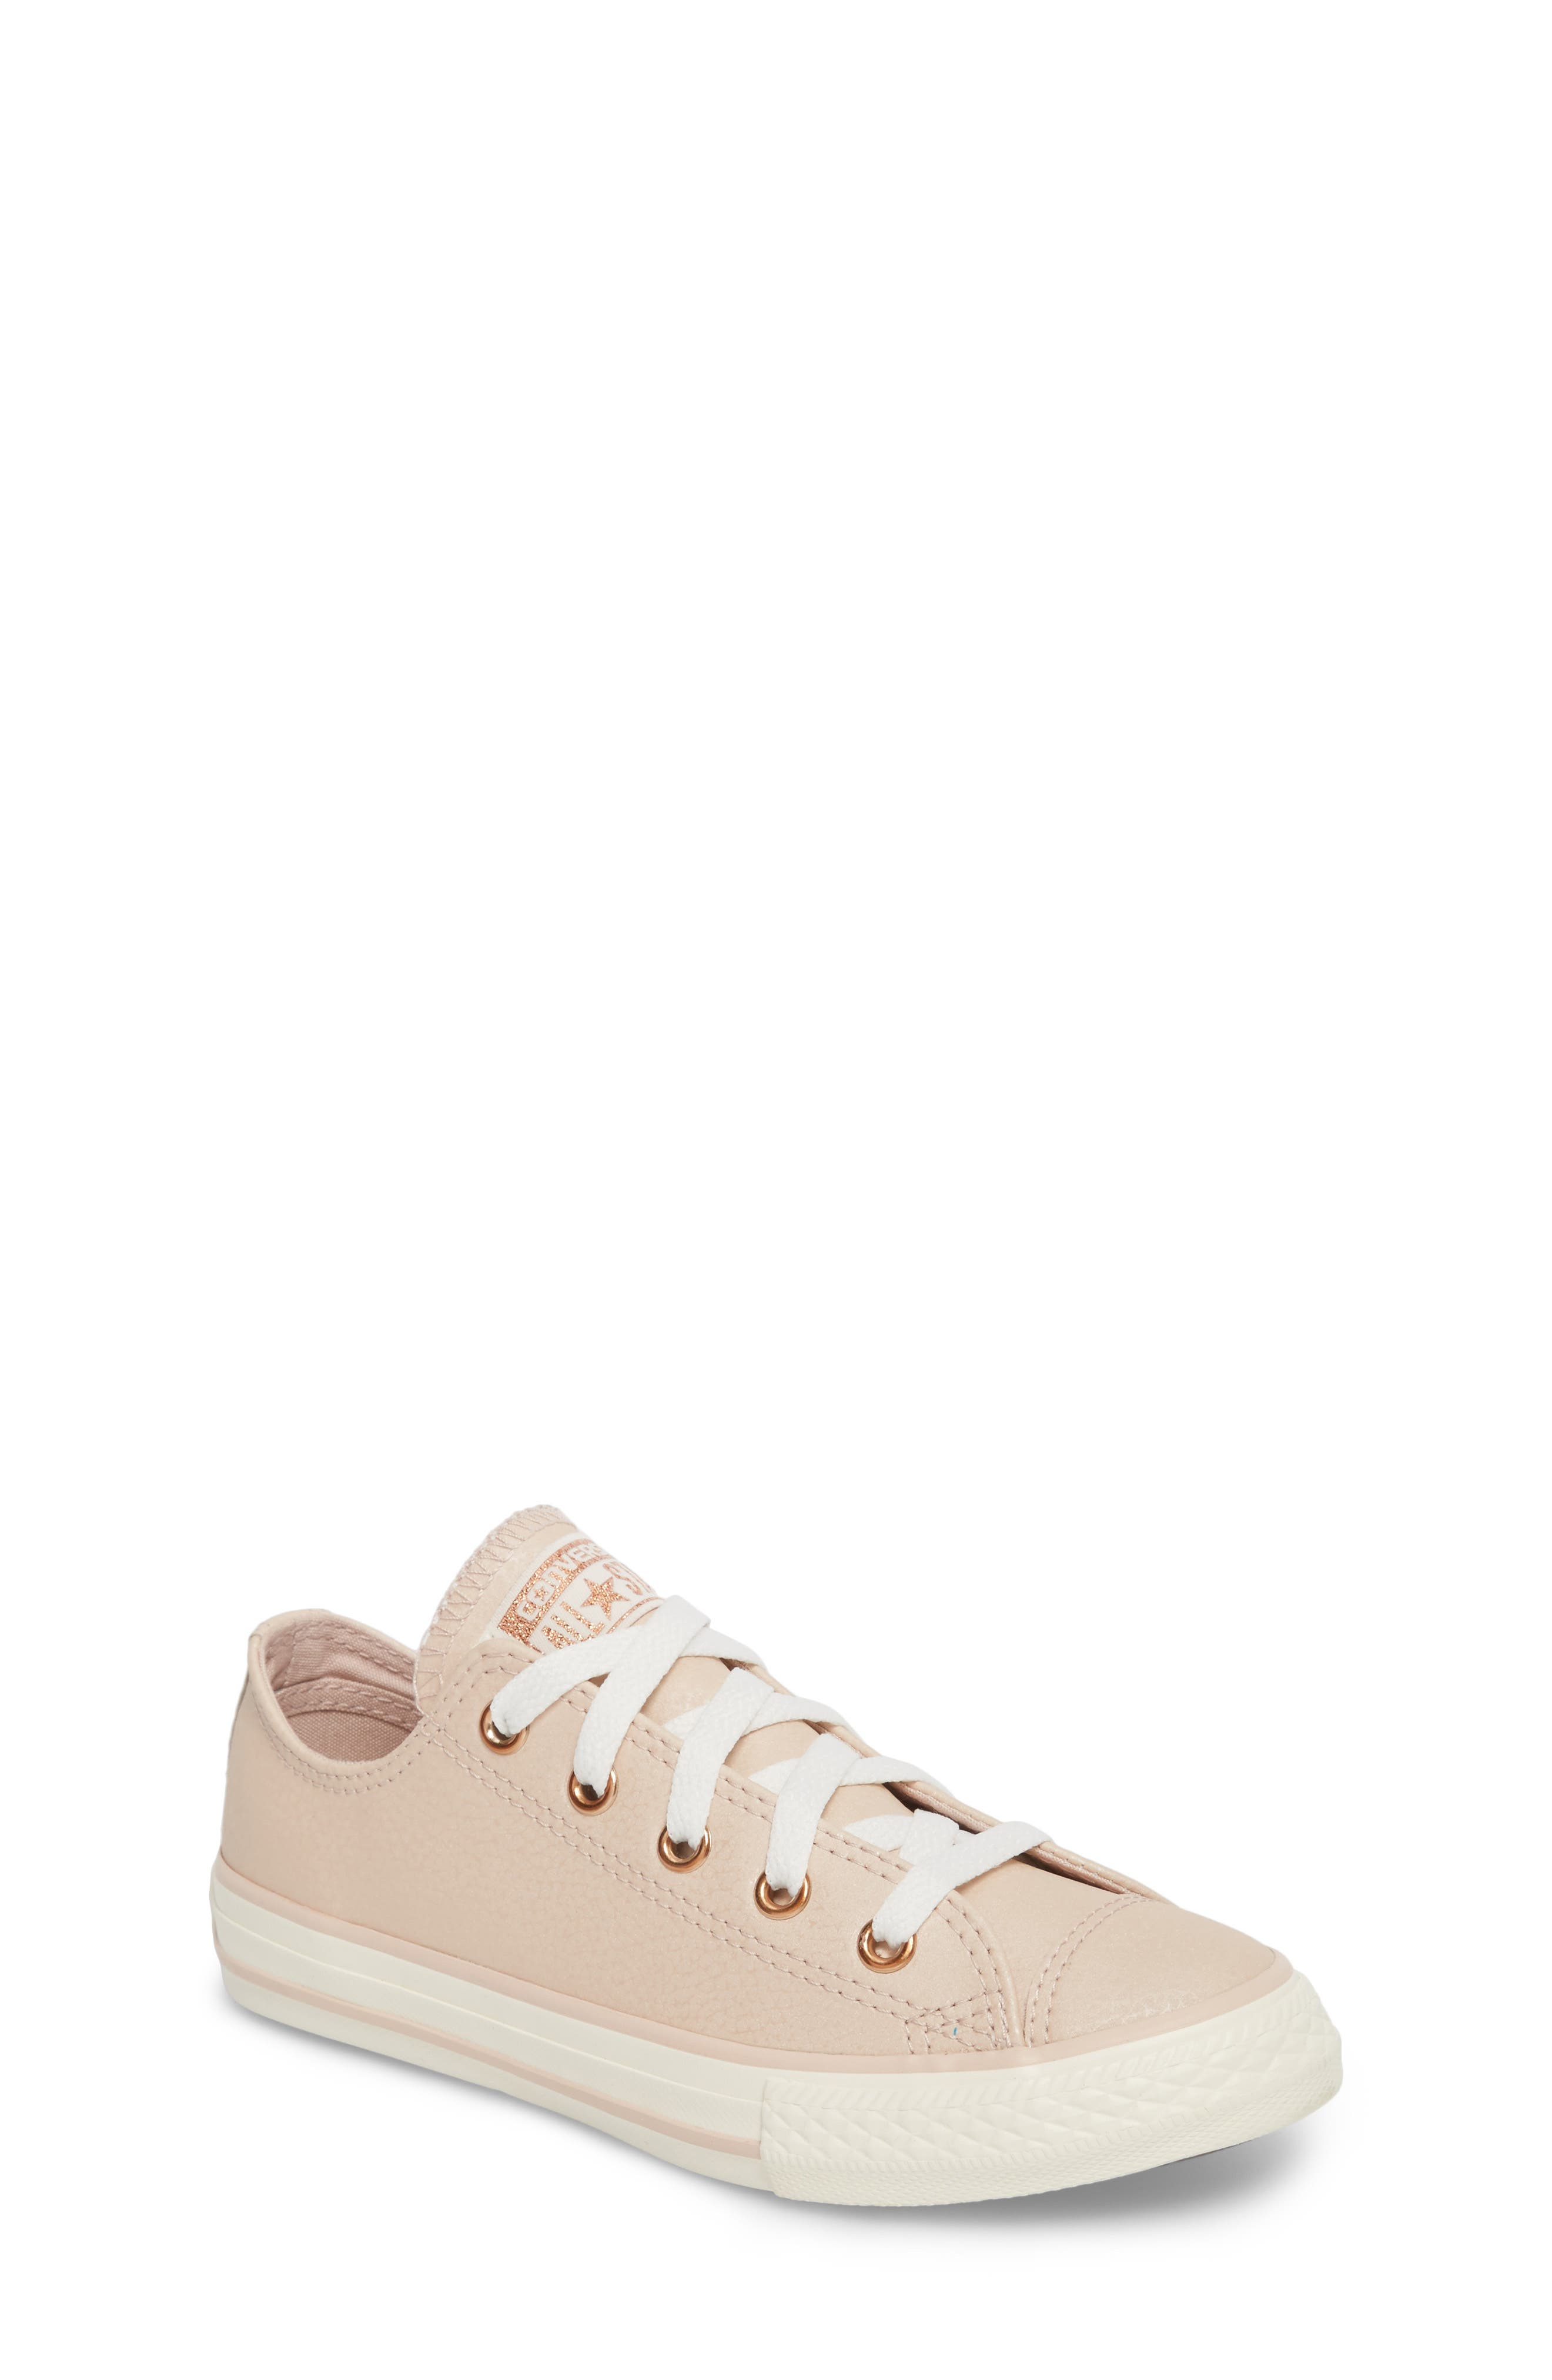 All Star<sup>®</sup> Fashion Low Top Sneaker,                         Main,                         color, Particle Beige